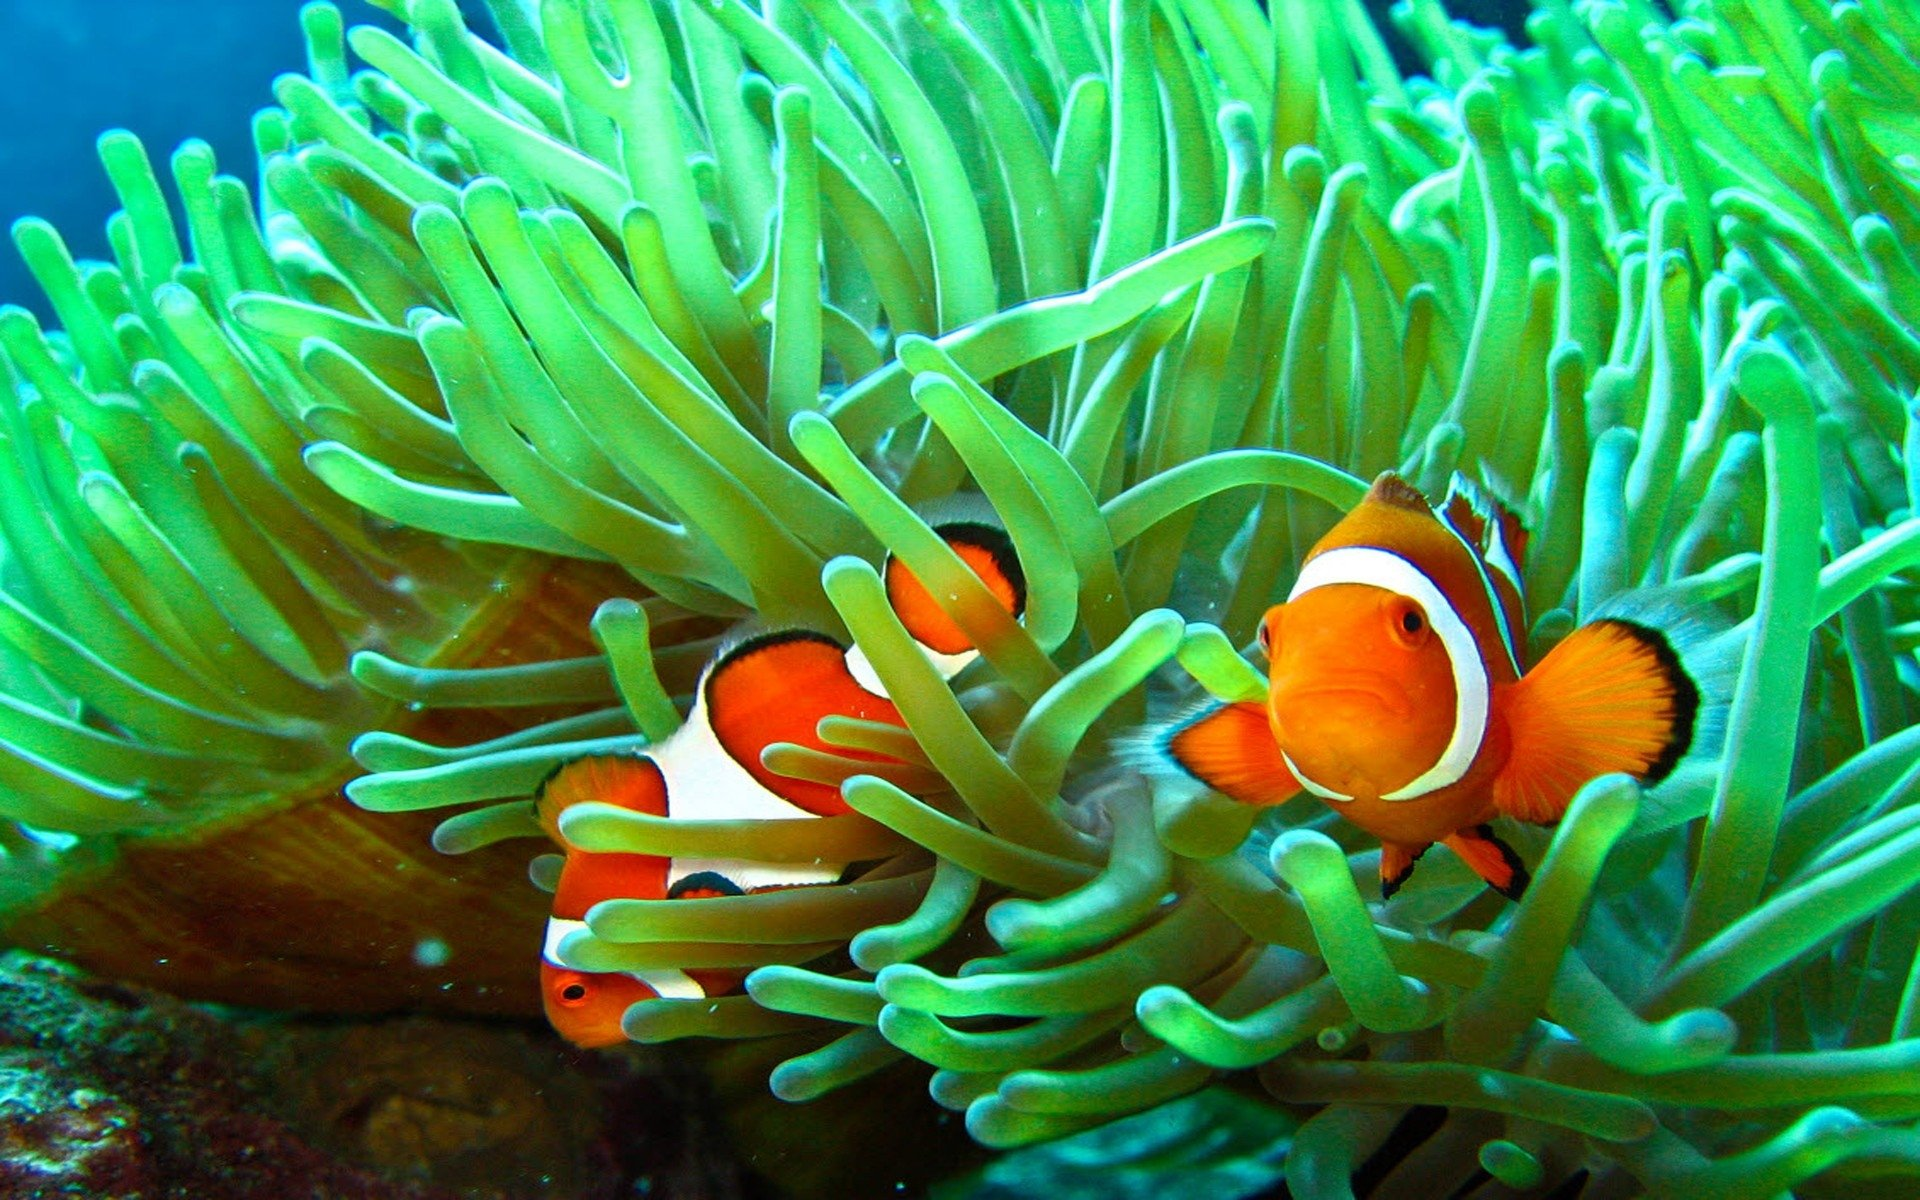 Clown Fish Wallpaper Iphone 6 Plus Two Clownfish In Sea Grass Full Hd Wallpaper And